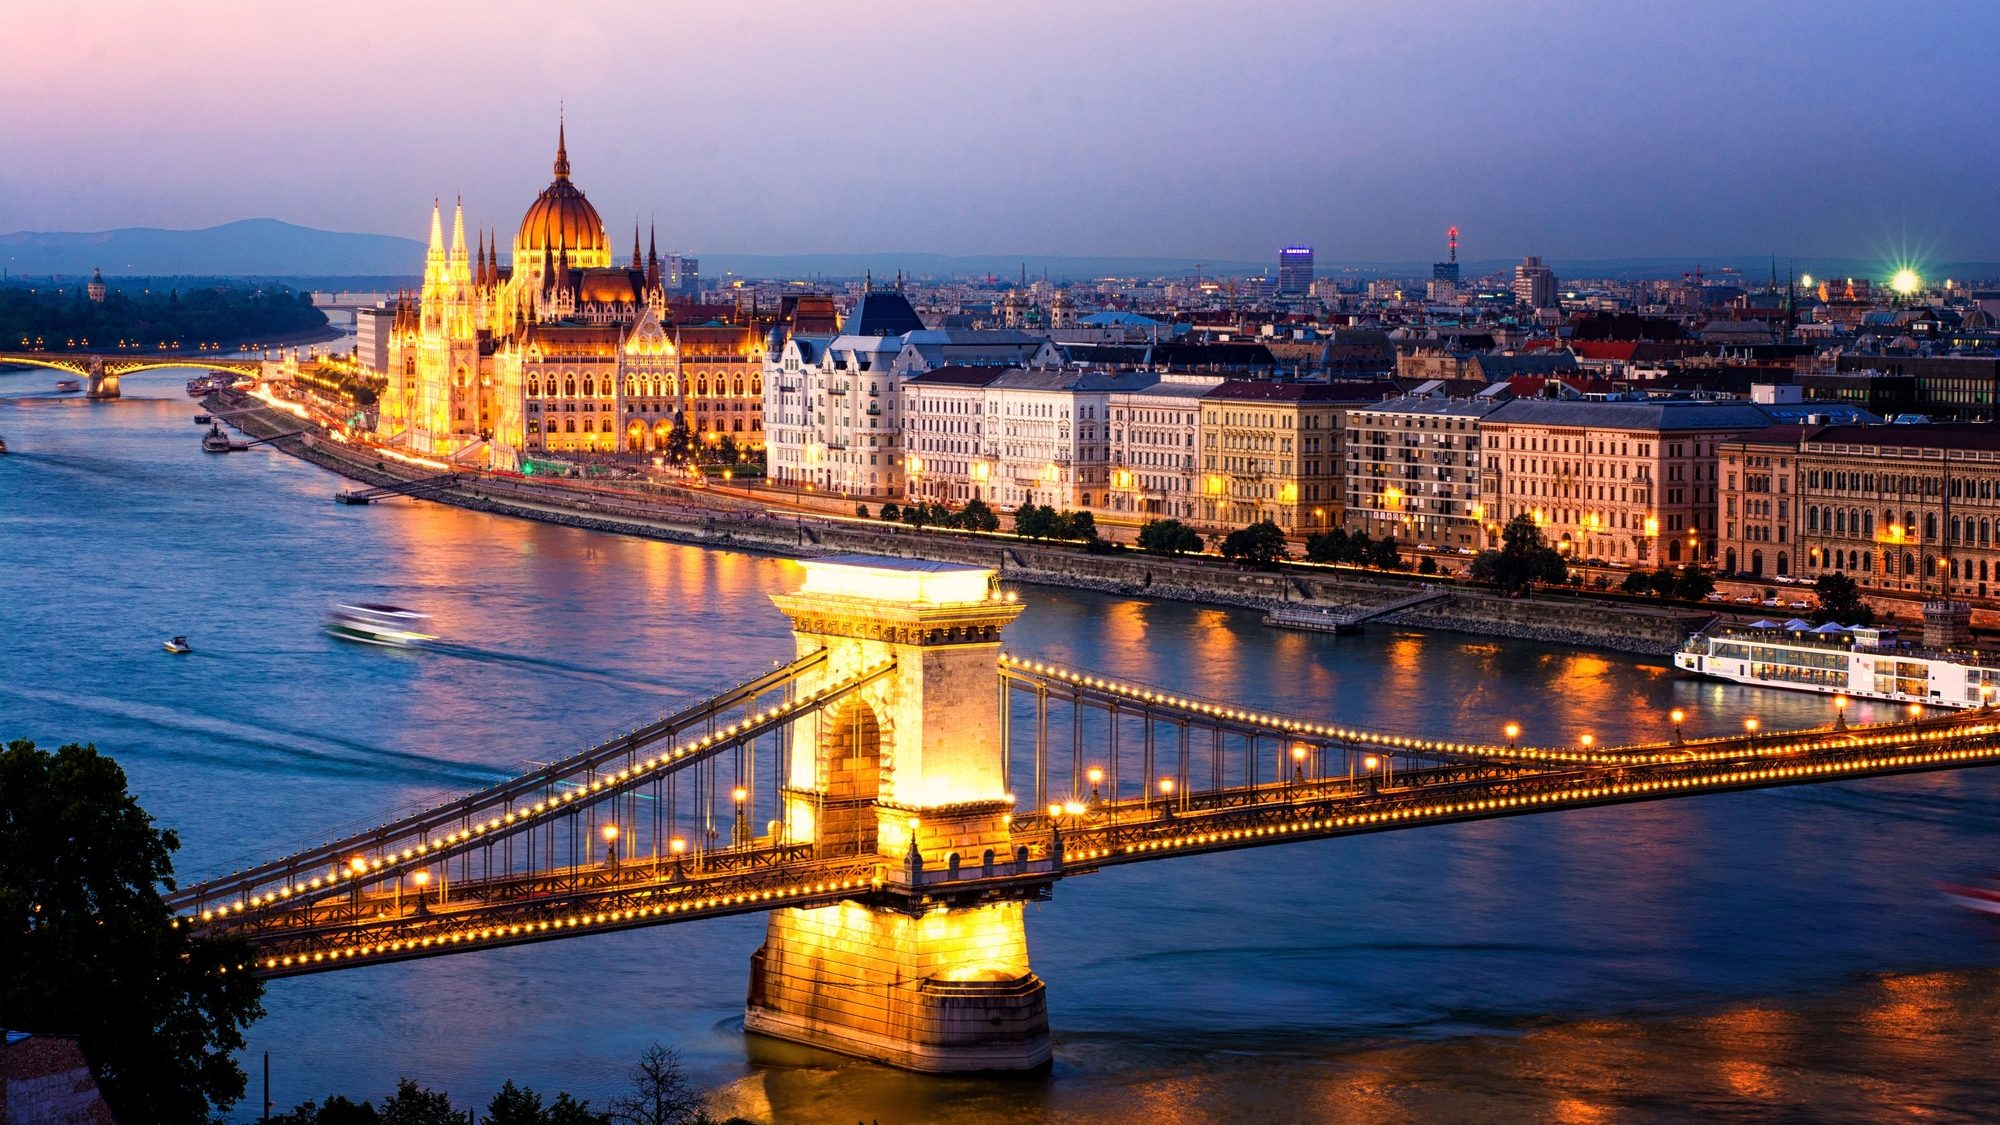 6th International choir and orchestra festival in Budapest (Hungary)